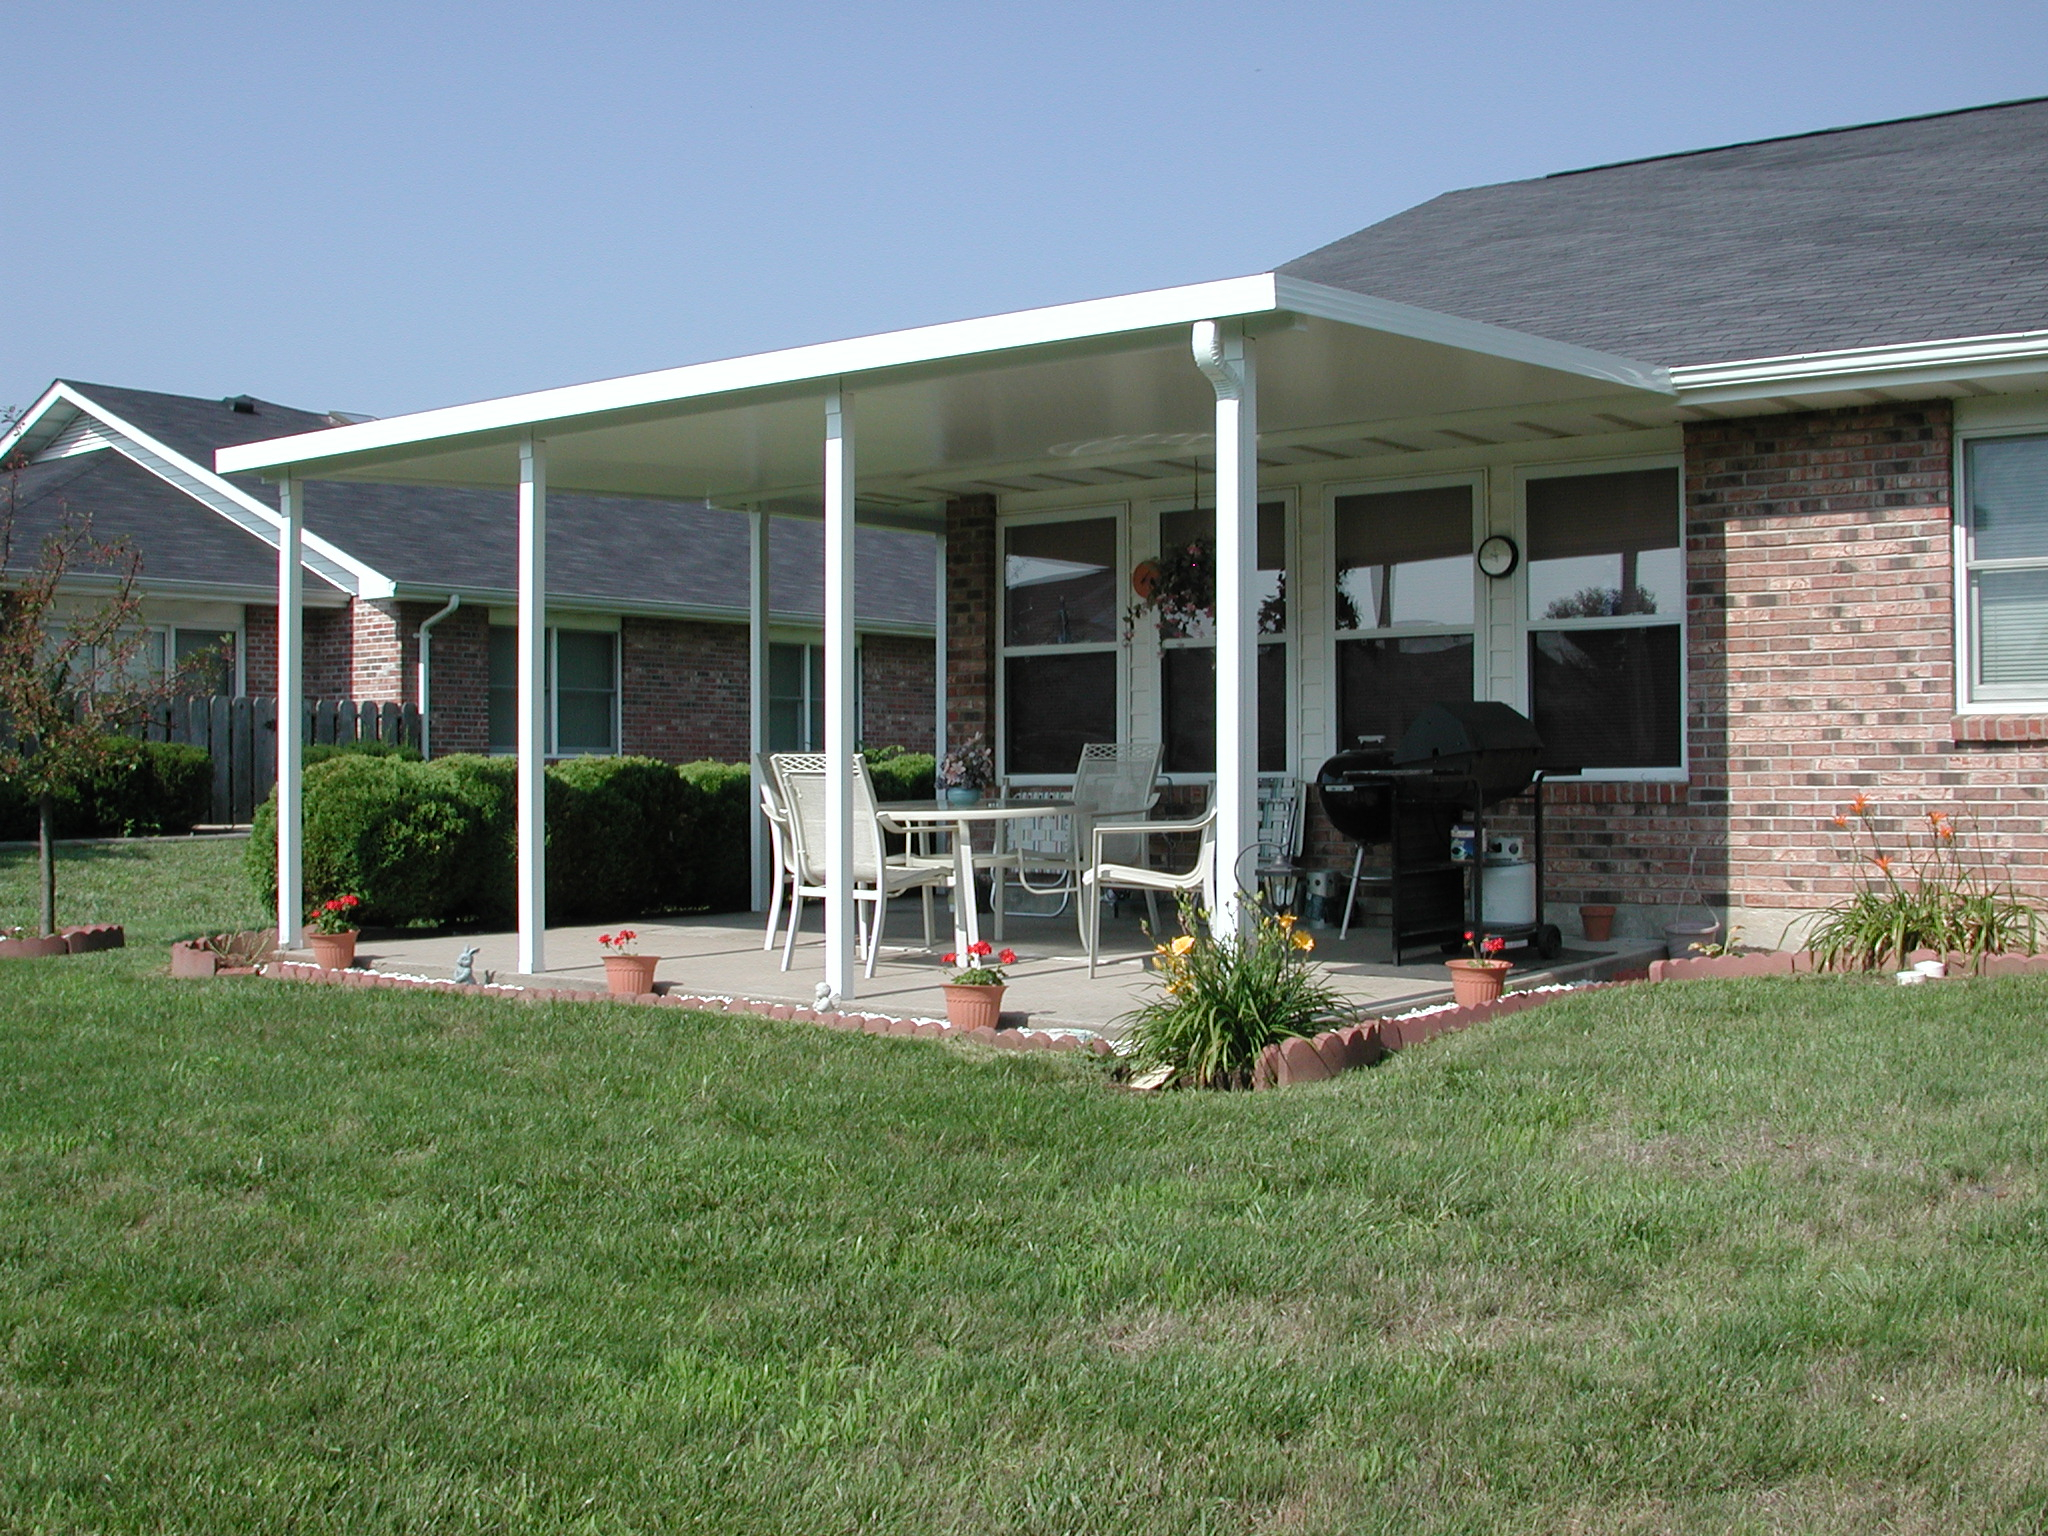 Home Page Glenlo Awning Window Company pertaining to dimensions 2048 X 1536